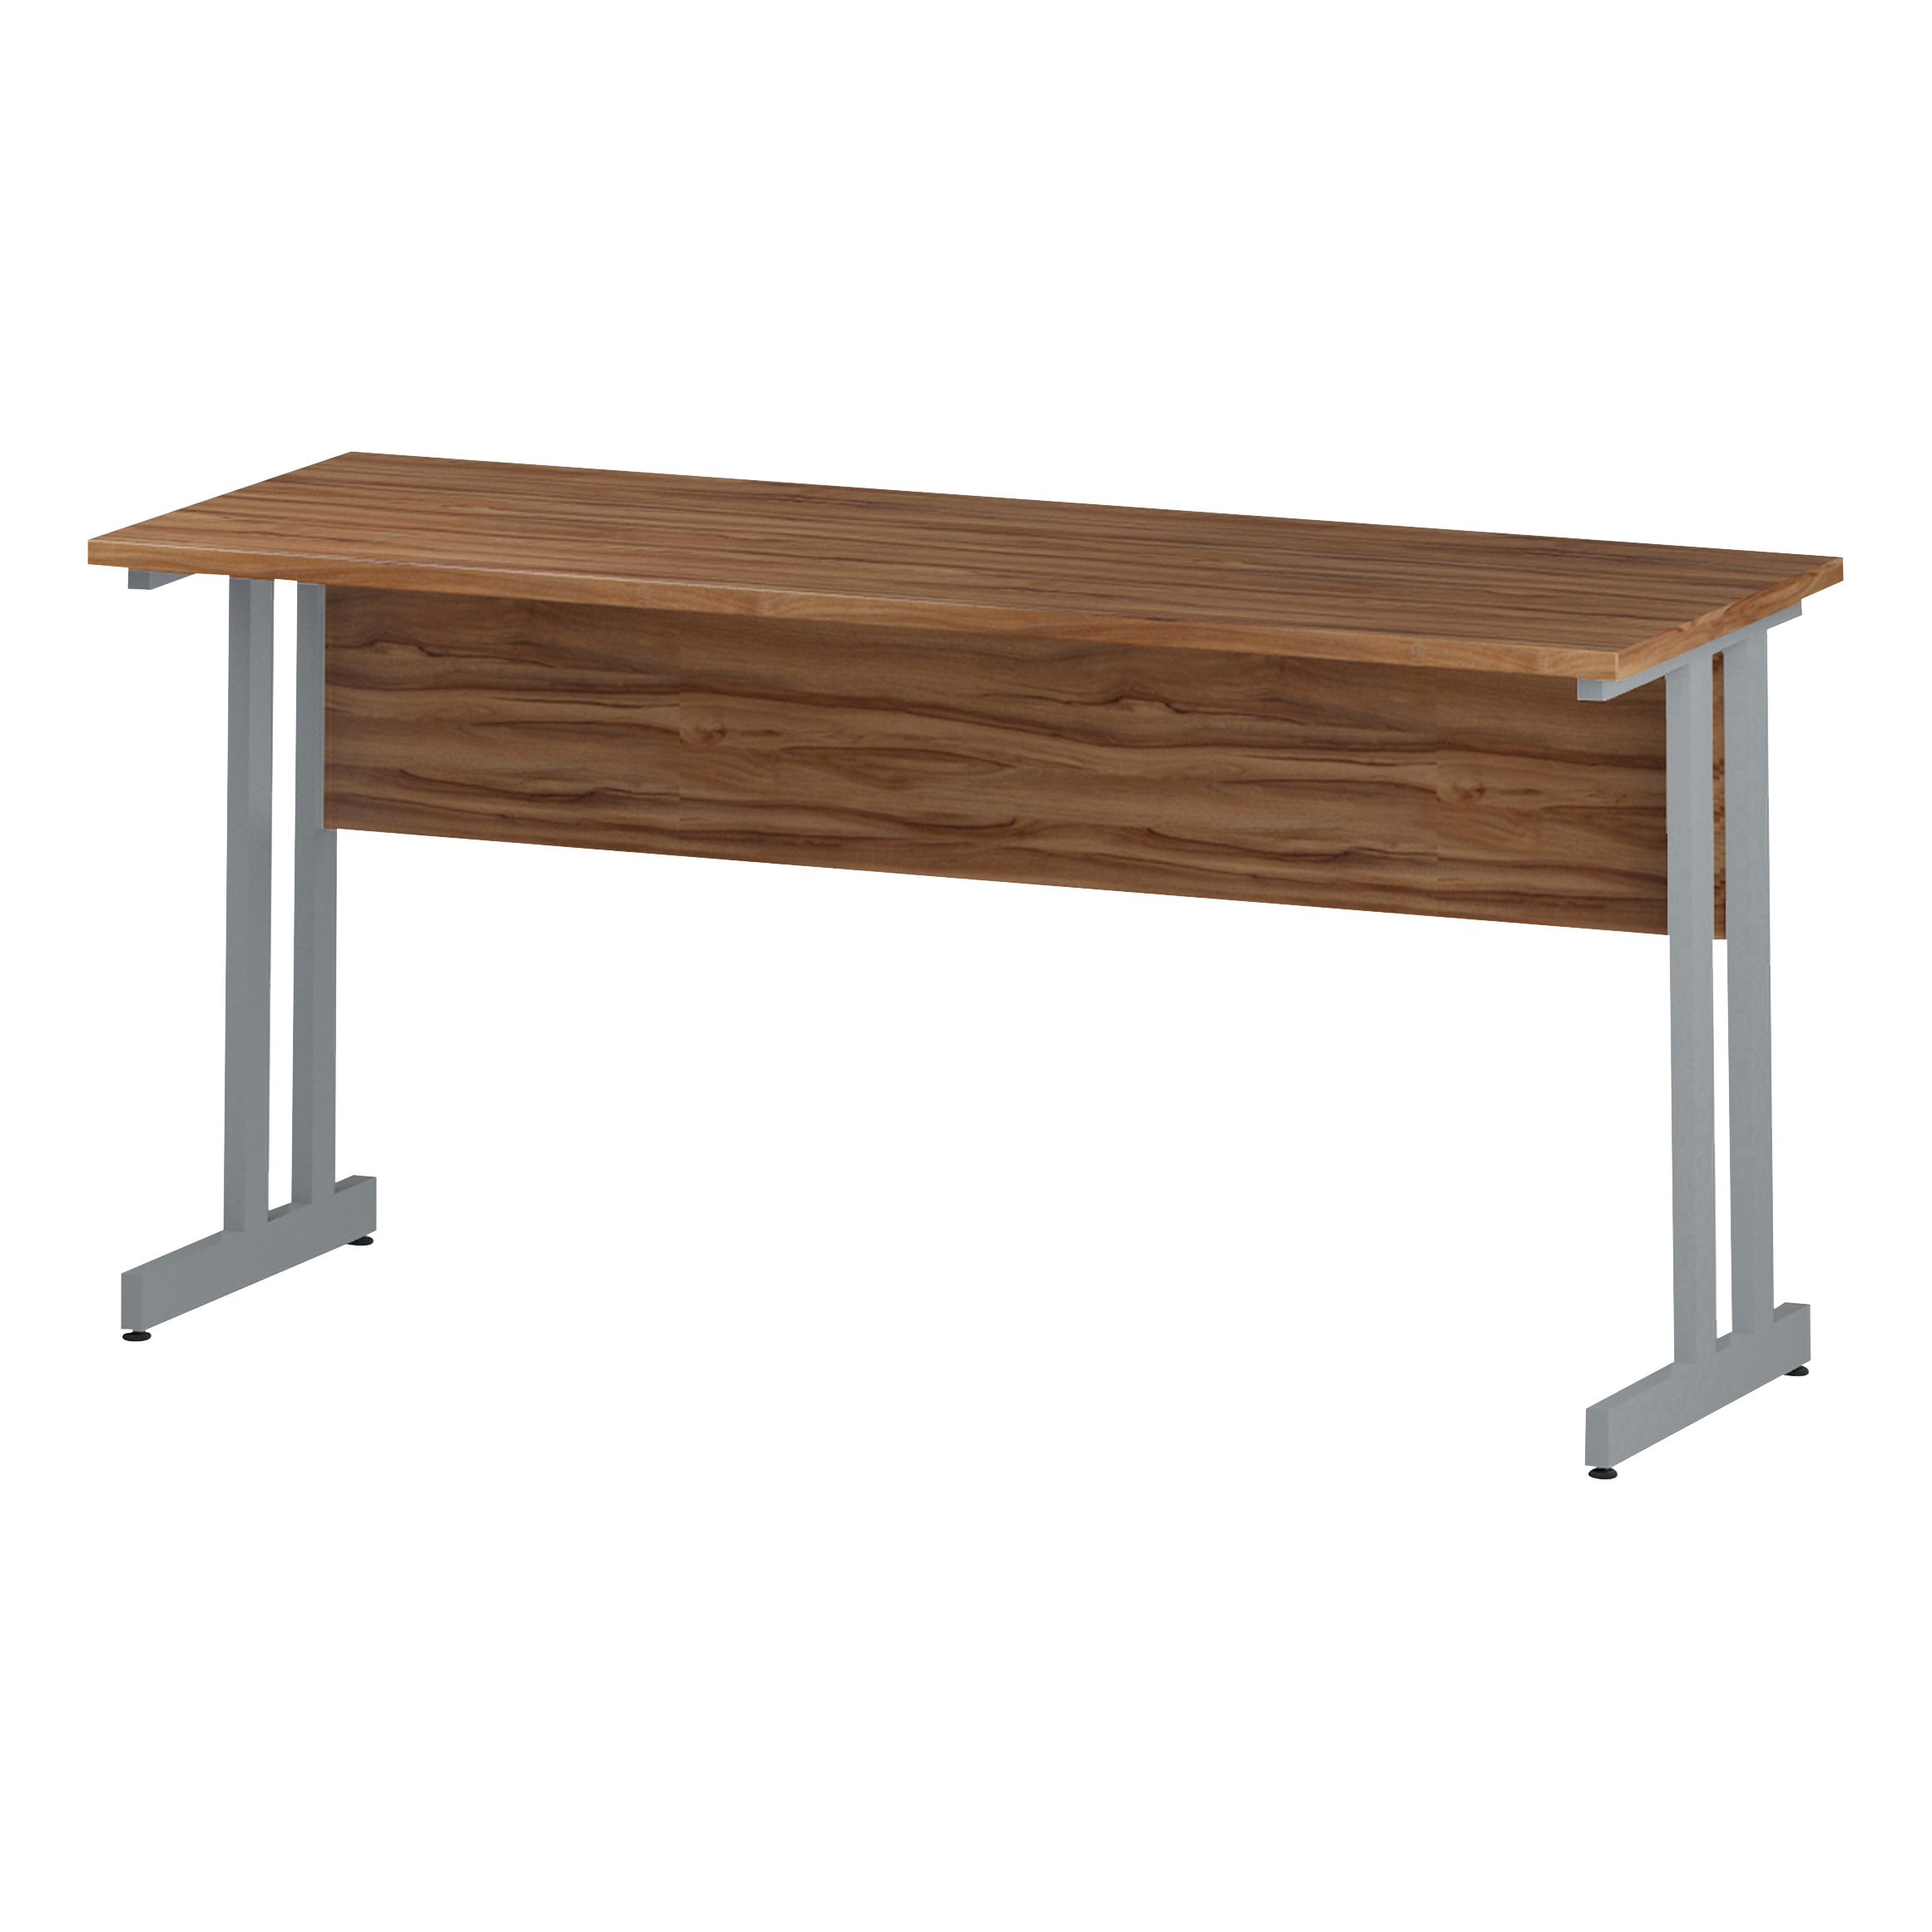 Trexus Rectangular Slim Desk Silver Cantilever Leg 1600x600mm Walnut Ref I001912